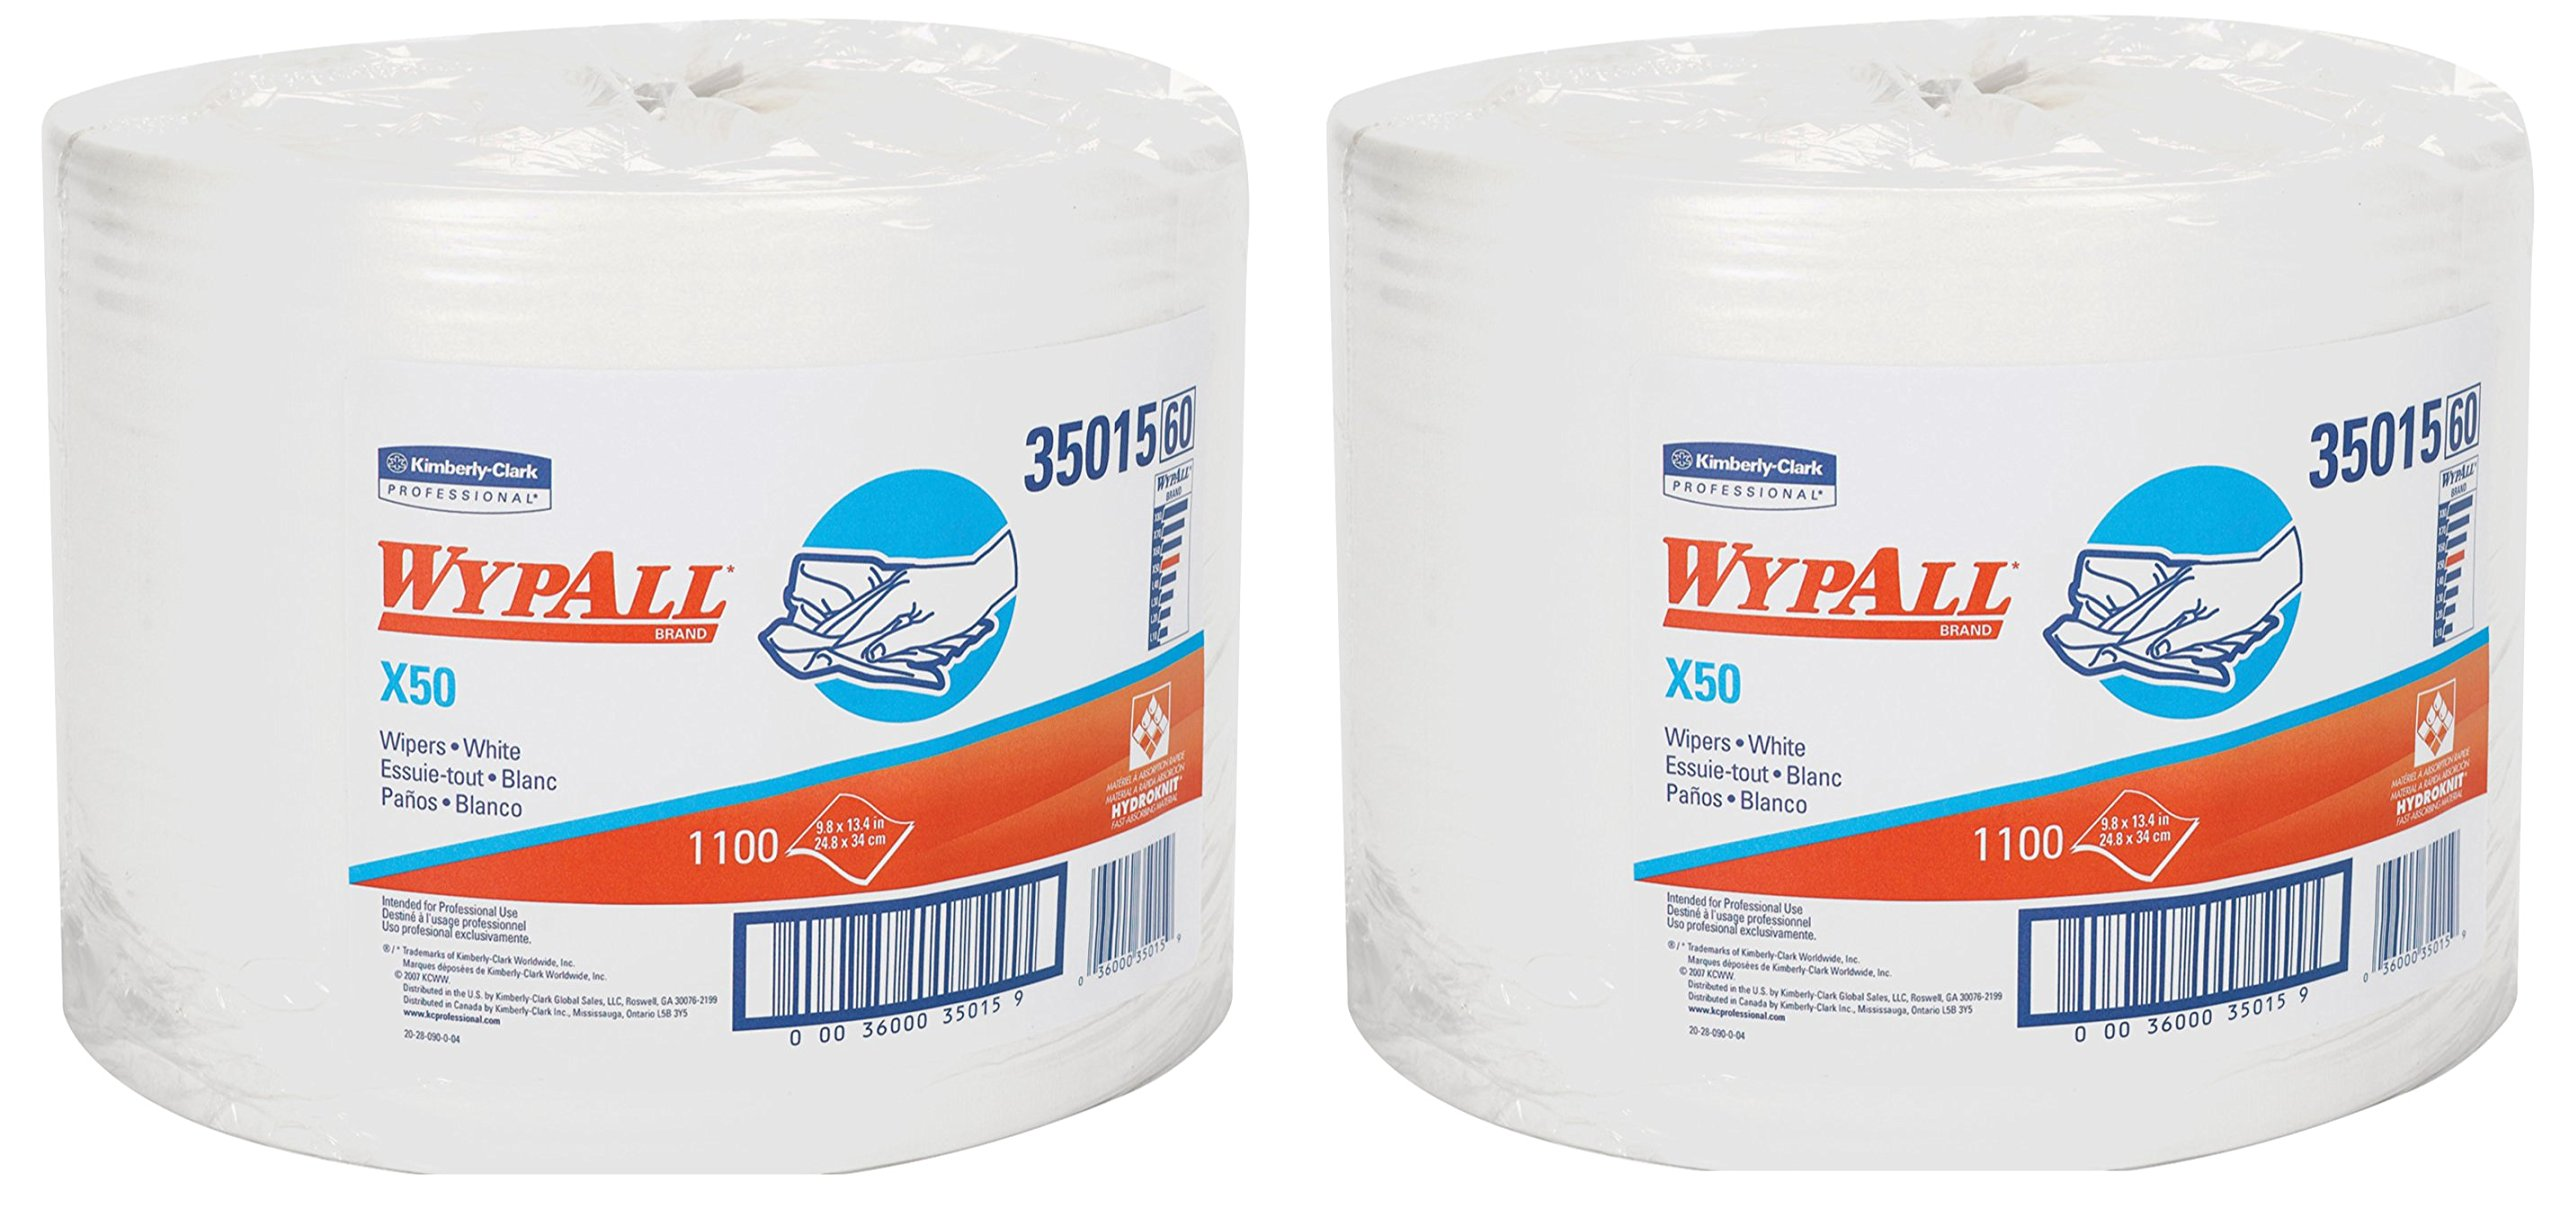 Wypall X50 Disposable Wipers (35015), Strong for Extended Use, Jumbo Roll, White, 1,100 Sheets / Roll (2)